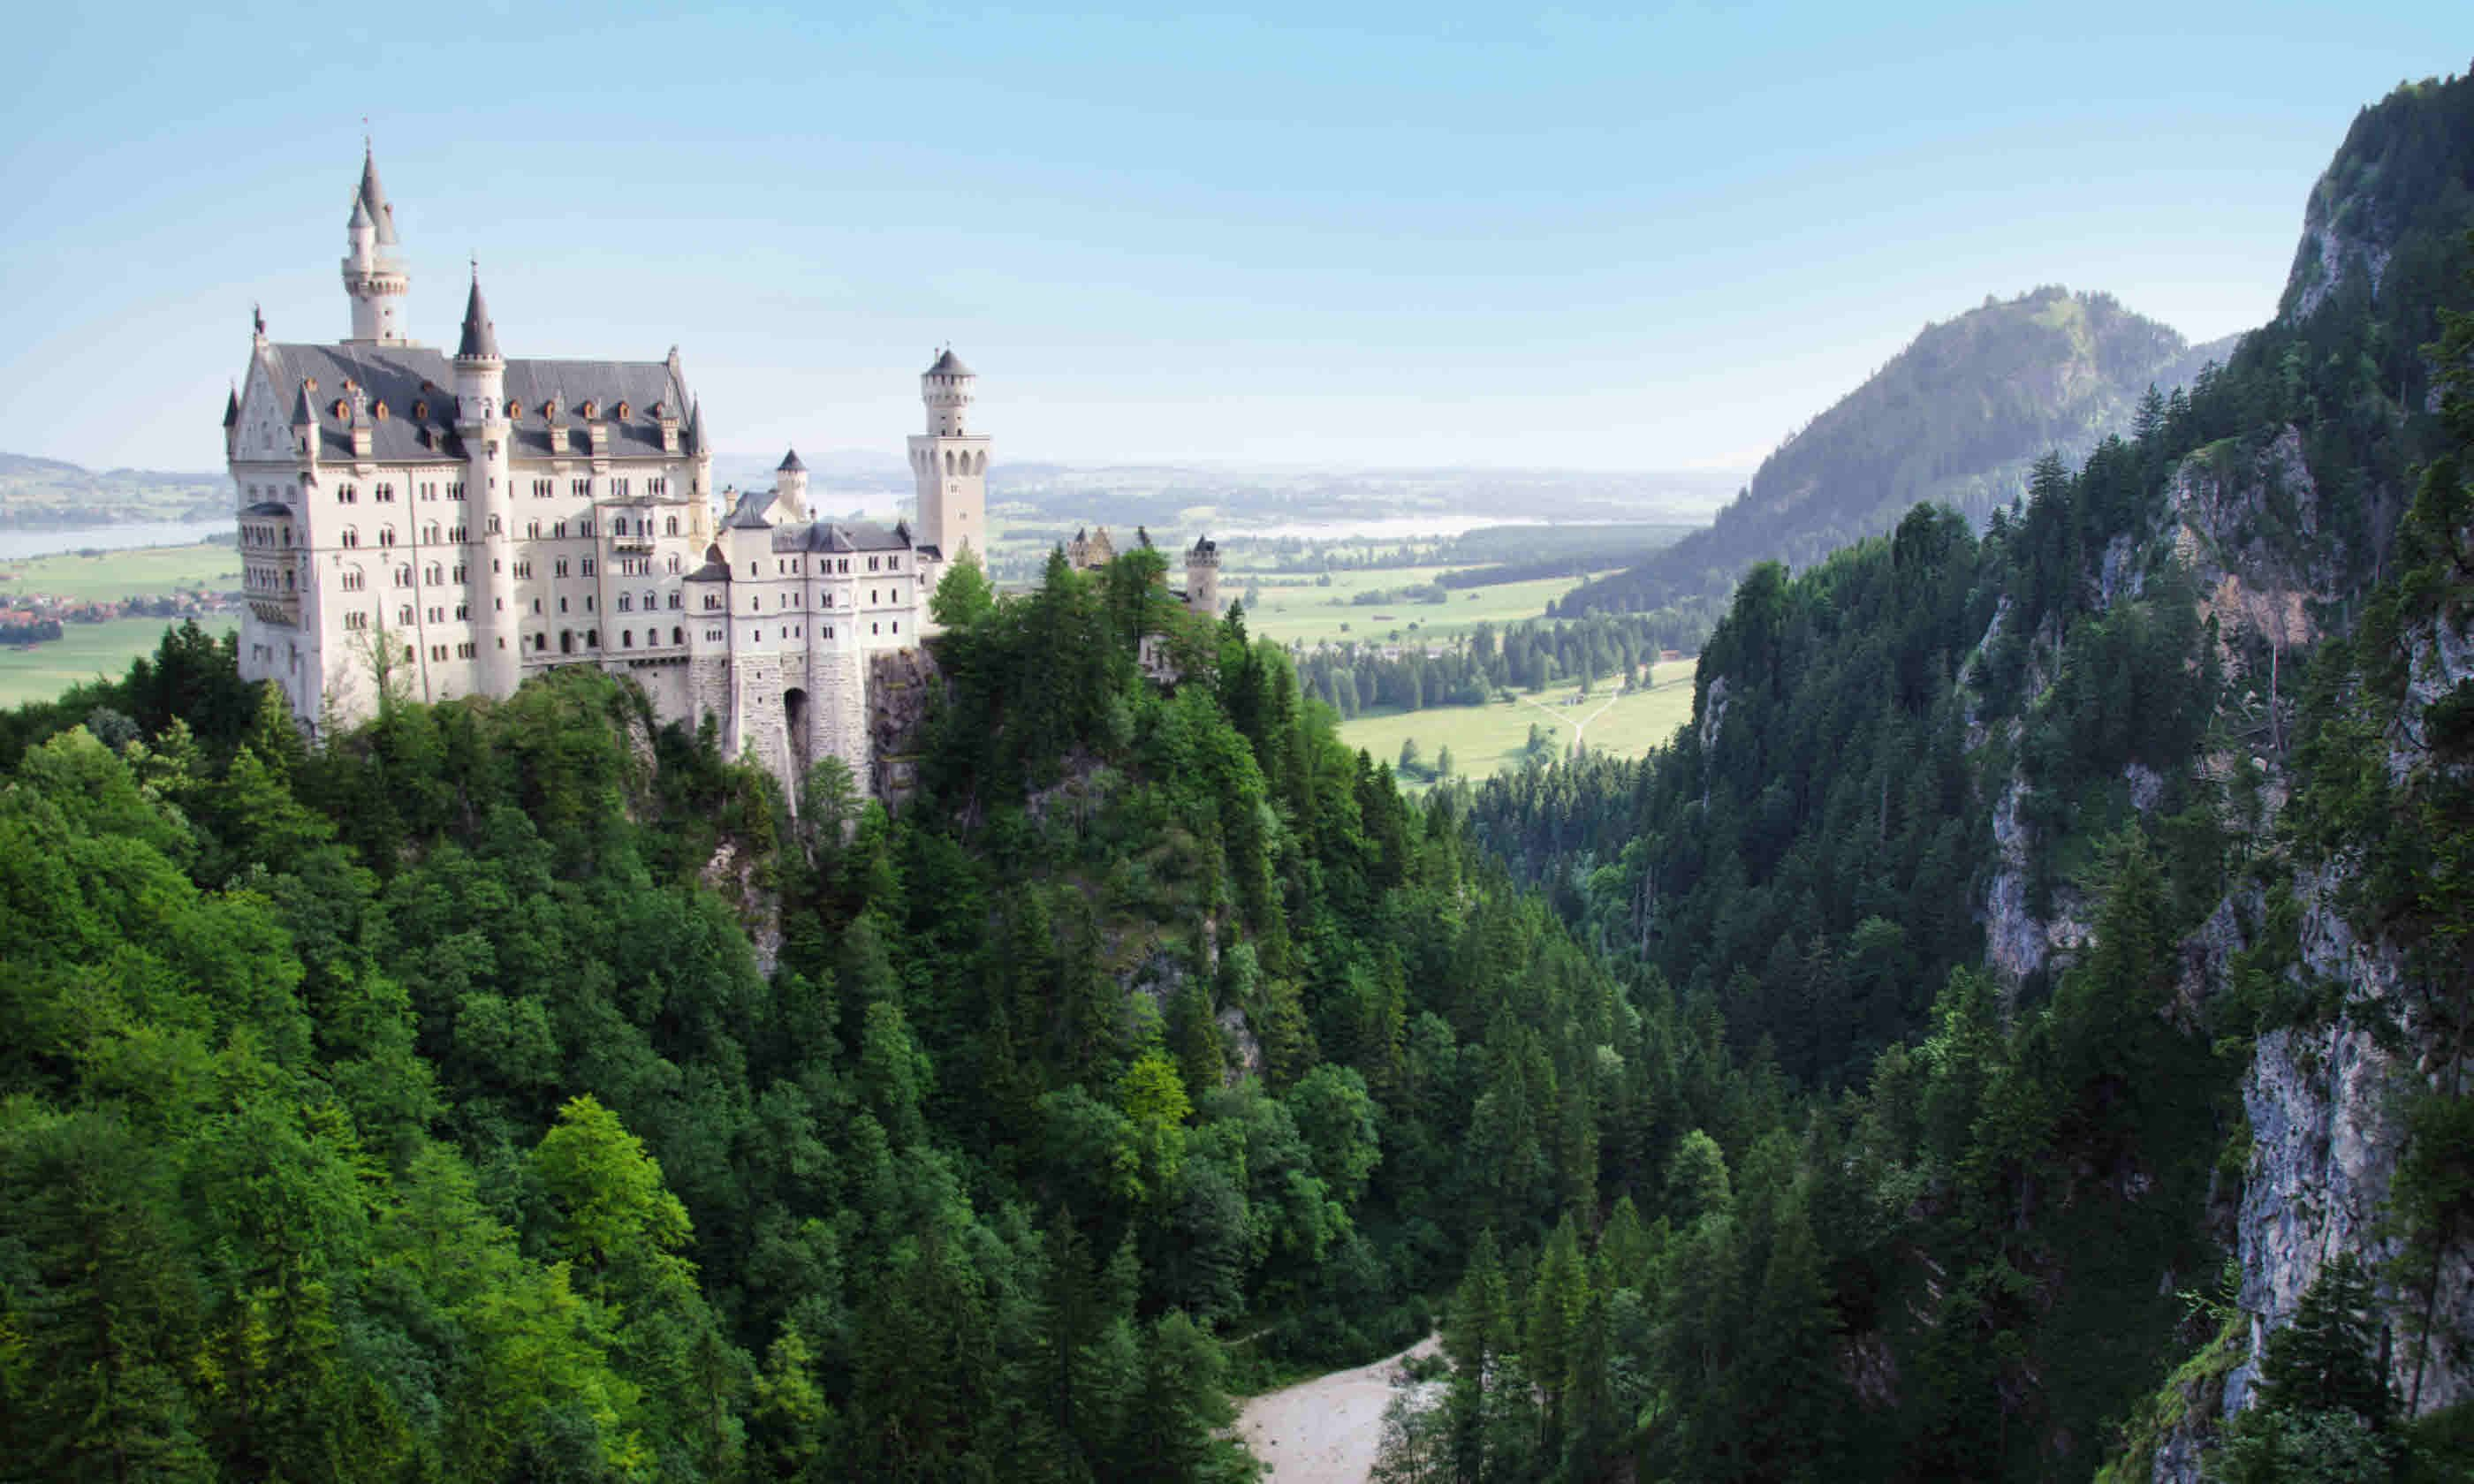 Neuschwanstein Castle that inspired Disney's Sleeping Beauty Castle (Neil S Price)